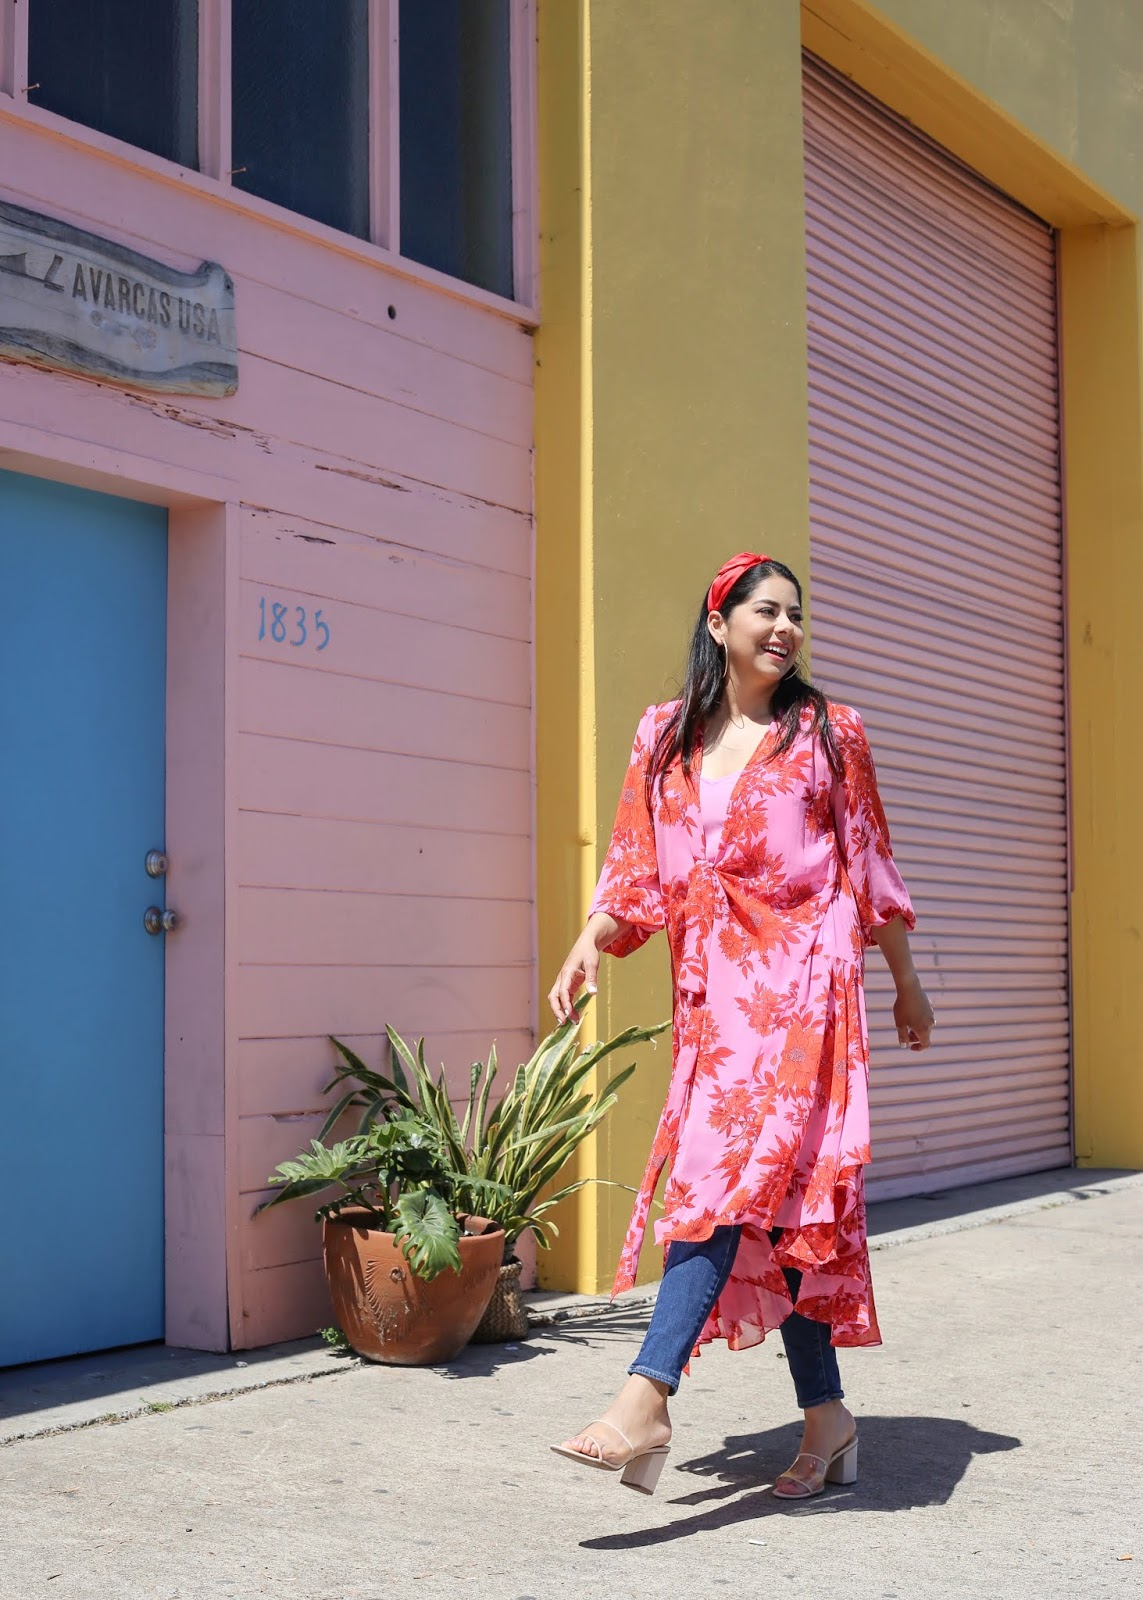 chic colorful outfit, barrio logan colorful walls, fun outfit in san diego